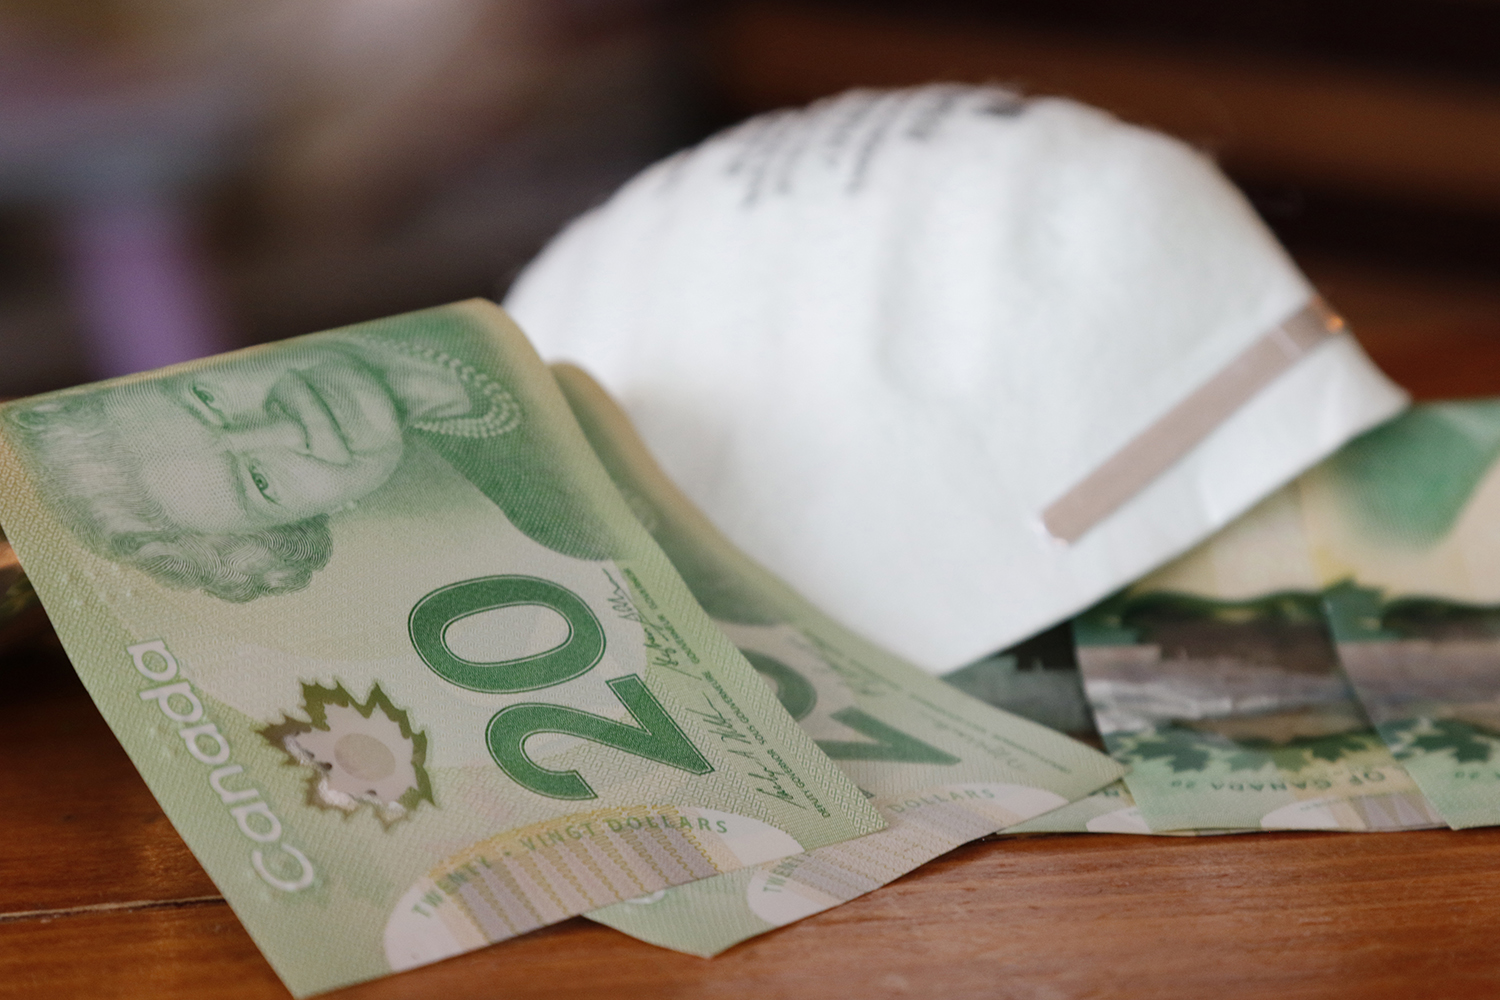 Canada Emergency Response Benefit & Financial Support Links